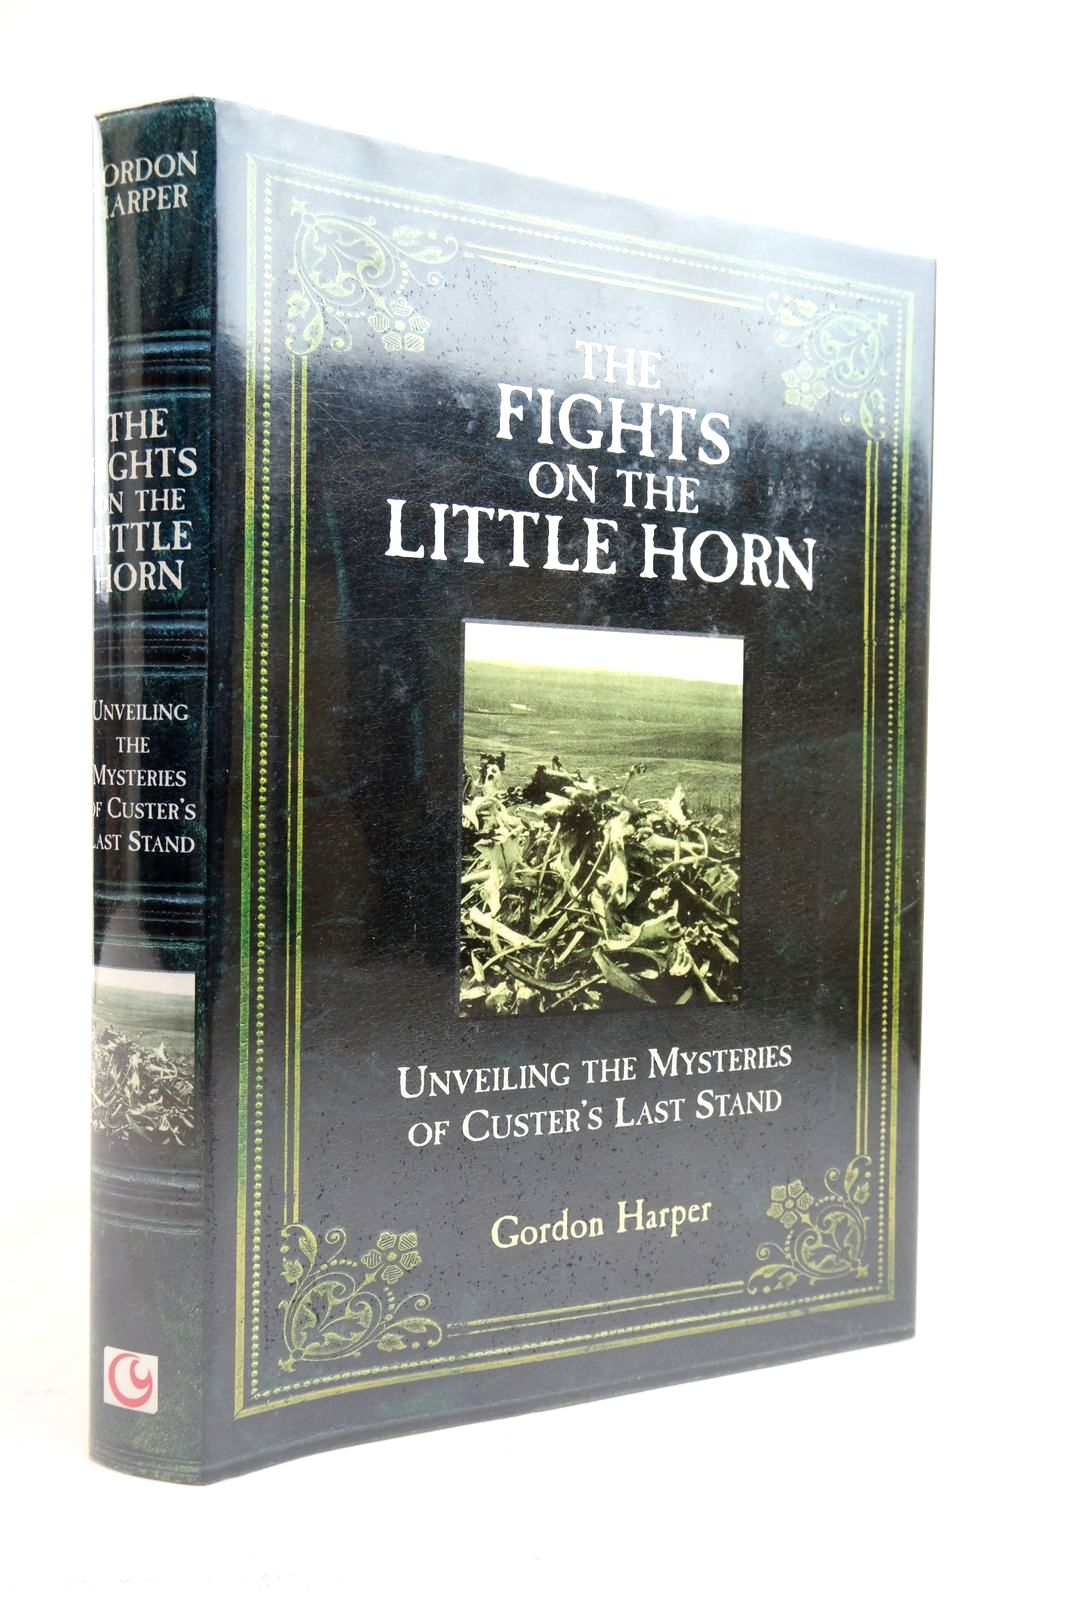 Photo of THE FIGHTS ON THE LITTLE HORN written by Harper, Gordon Clinton published by Casemate (STOCK CODE: 2135382)  for sale by Stella & Rose's Books